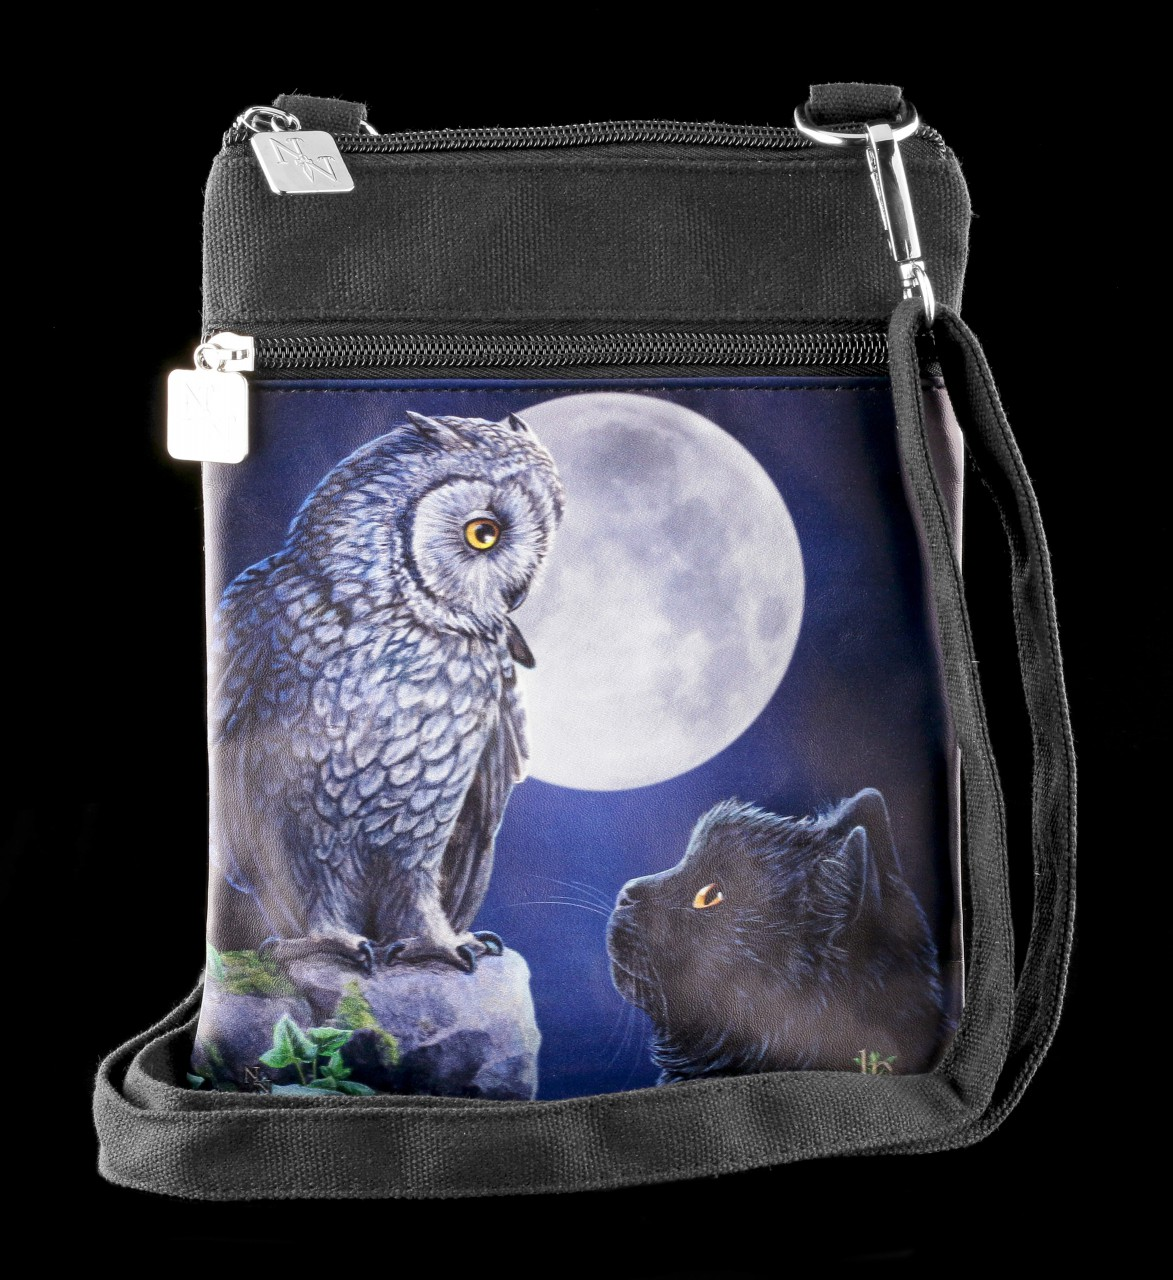 Small Shoulder Bag with Owl & Cat - Purrfect Wisdom